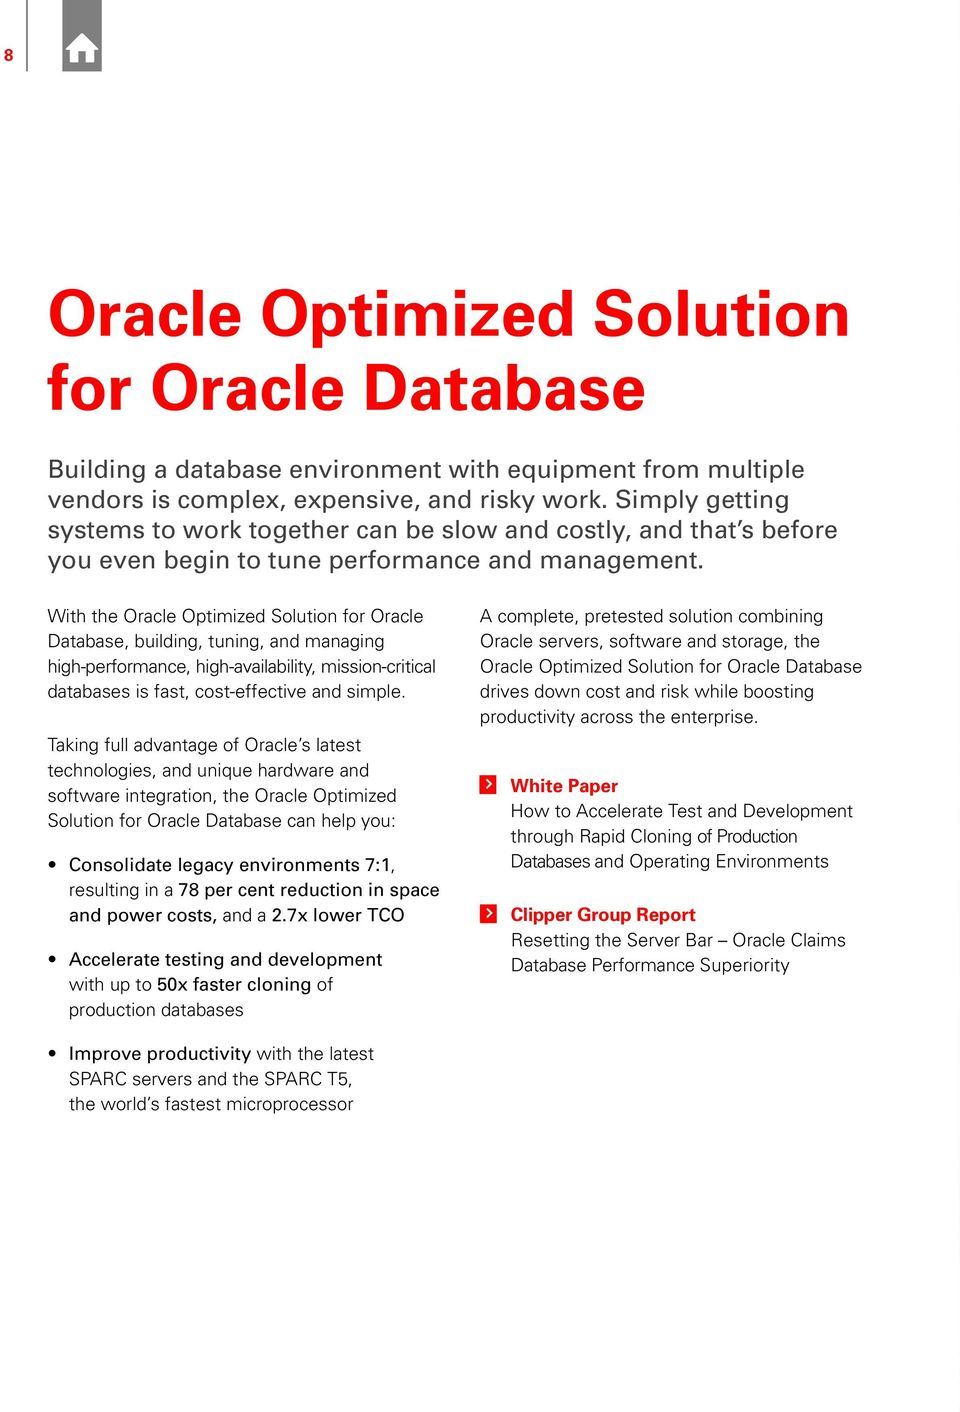 With the Oracle Optimized Solution for Oracle Database, building, tuning, and managing high-performance, high-availability, mission-critical databases is fast, cost-effective and simple.